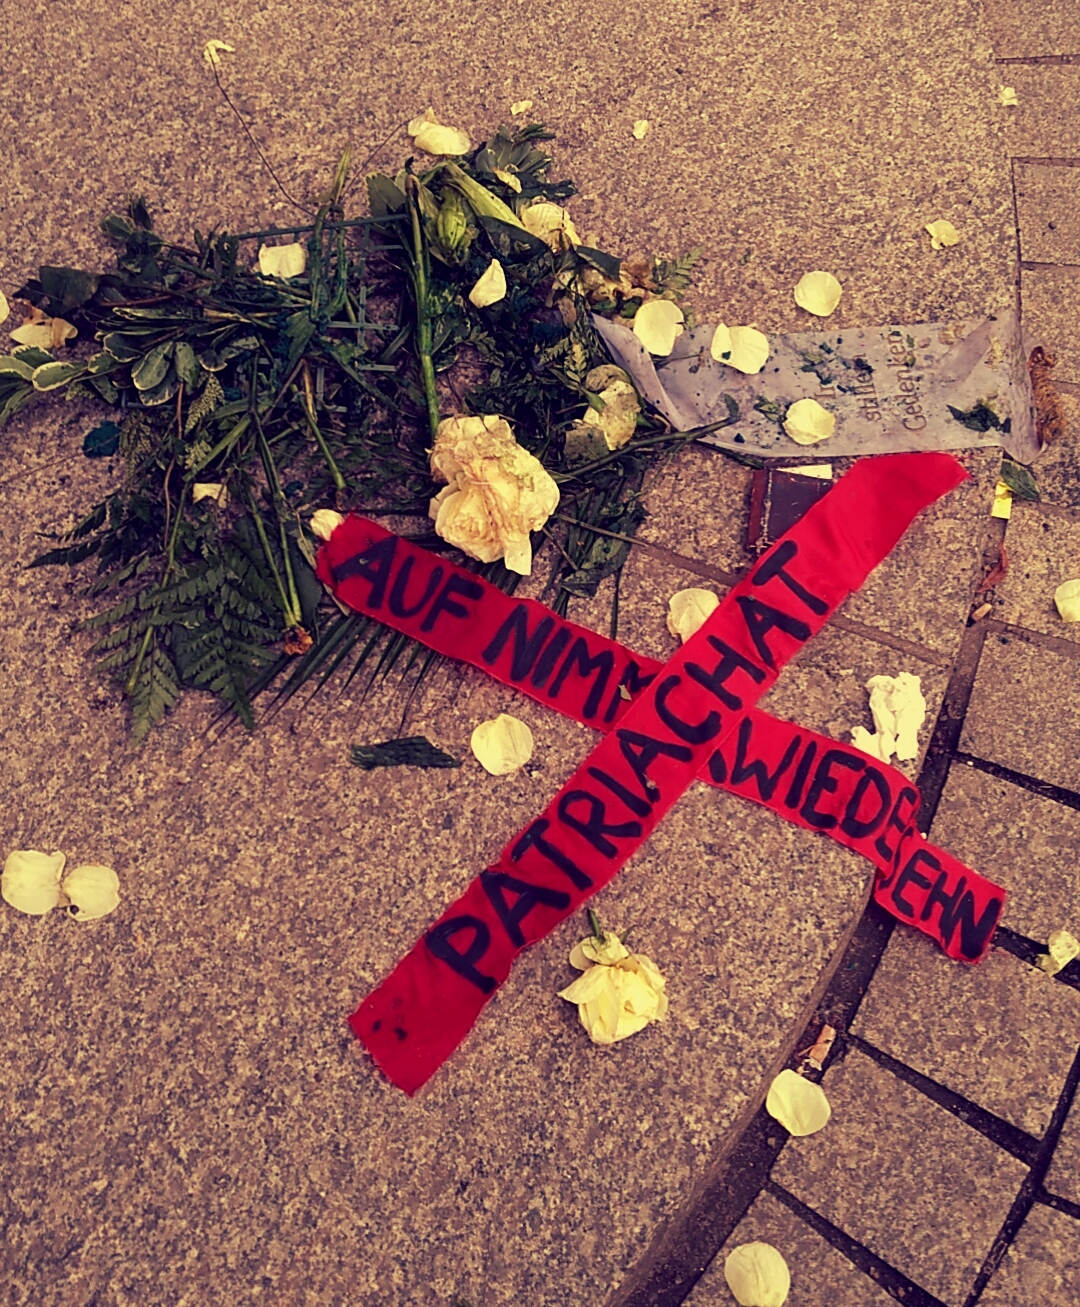 Destroyed flowers and banner reads: Auf Wiedersehen, Patriachat or Goodbye, Patriarchy.